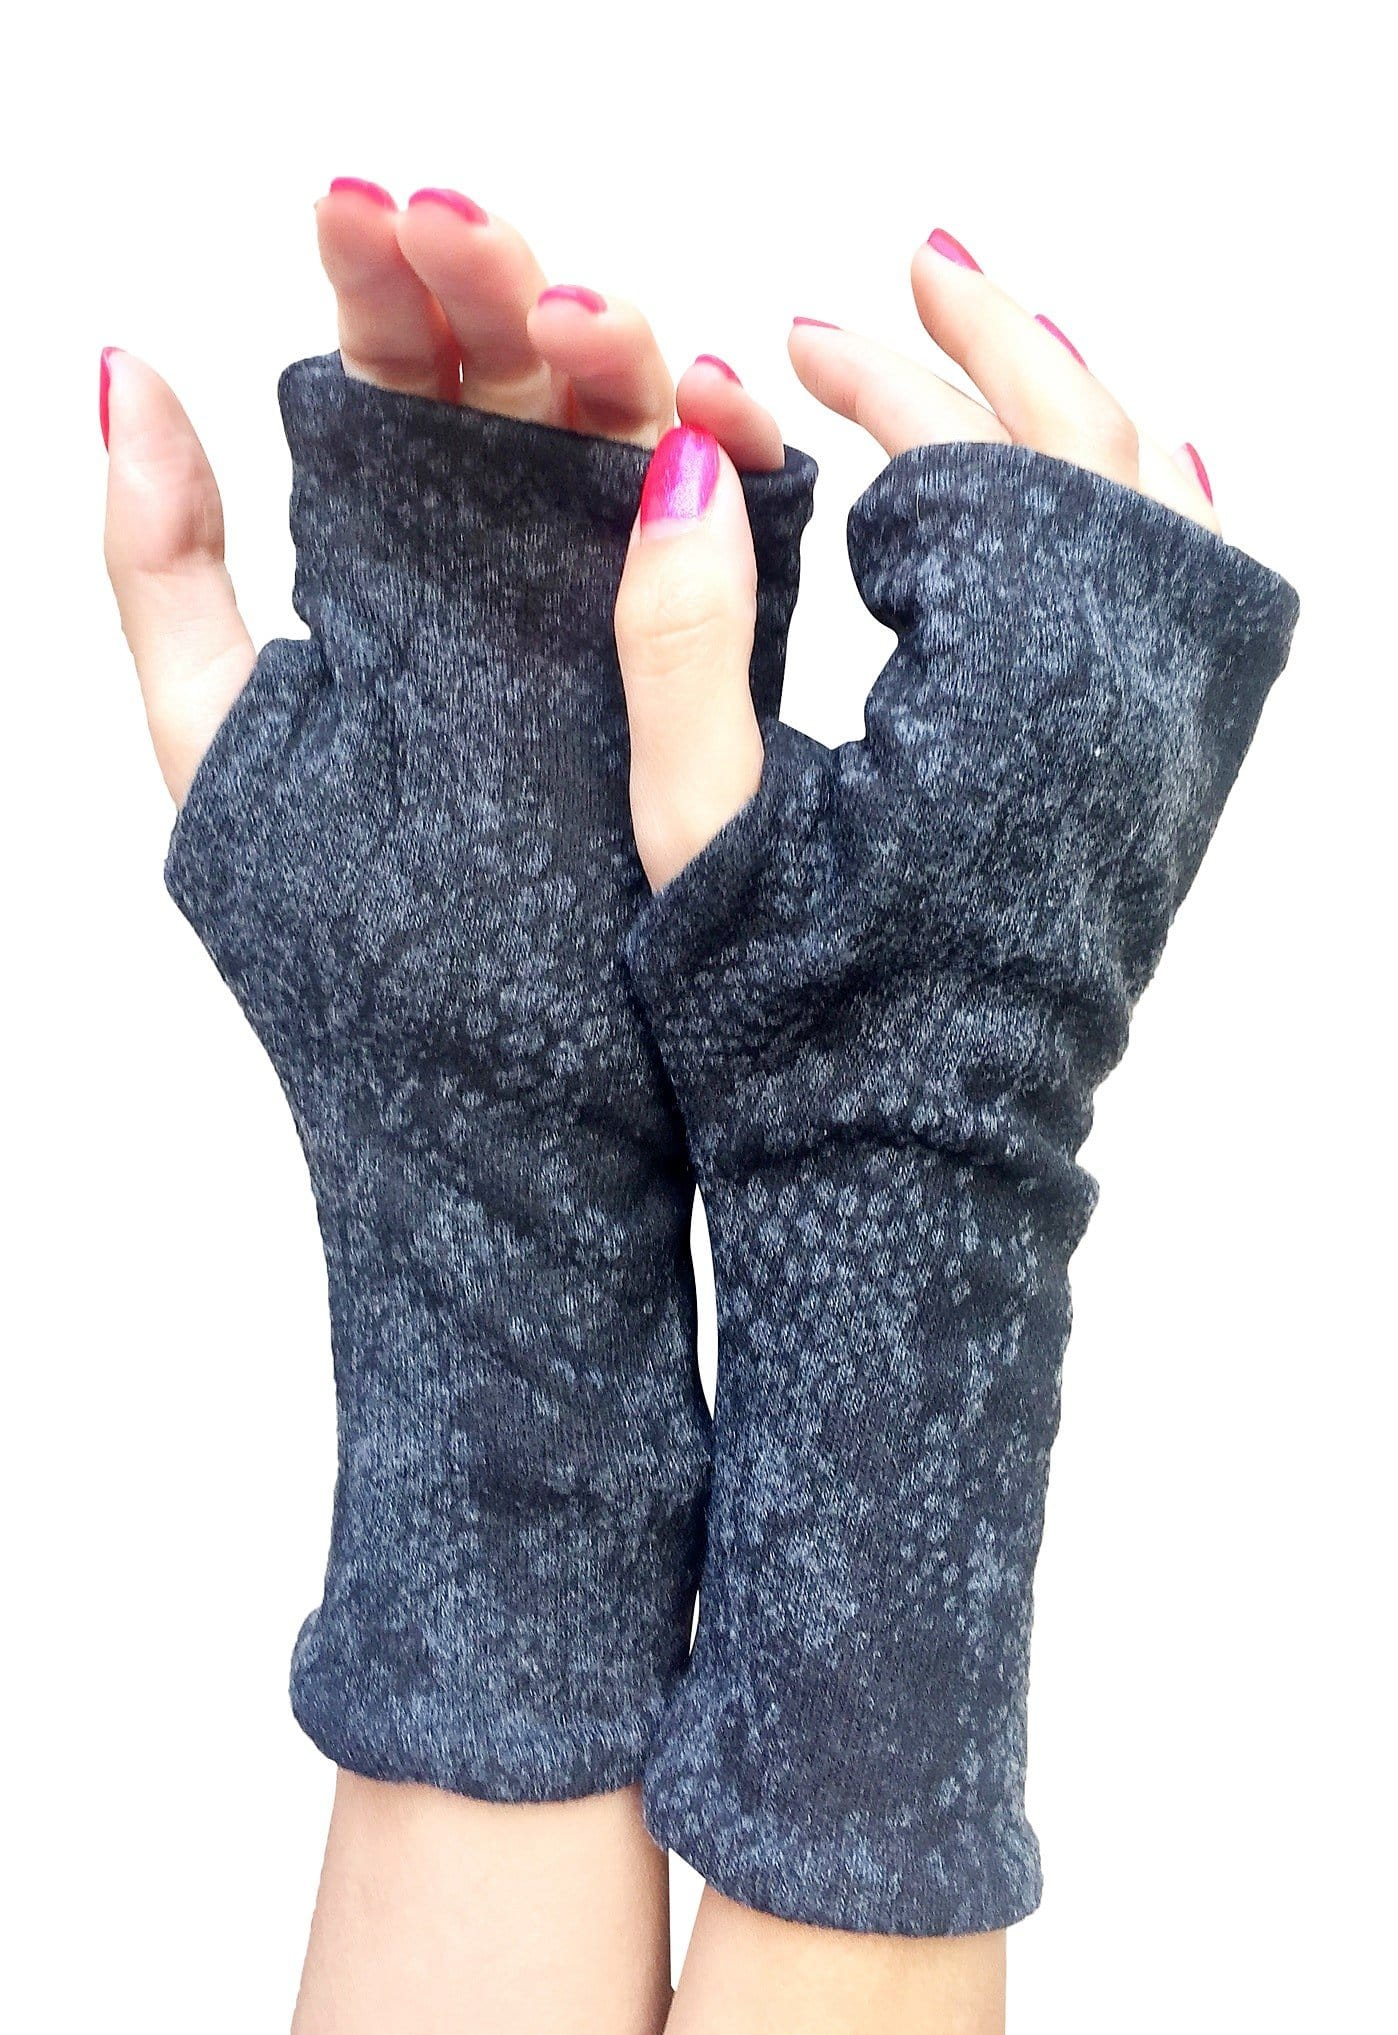 One size double layer fingerless glove in charcoal snake print